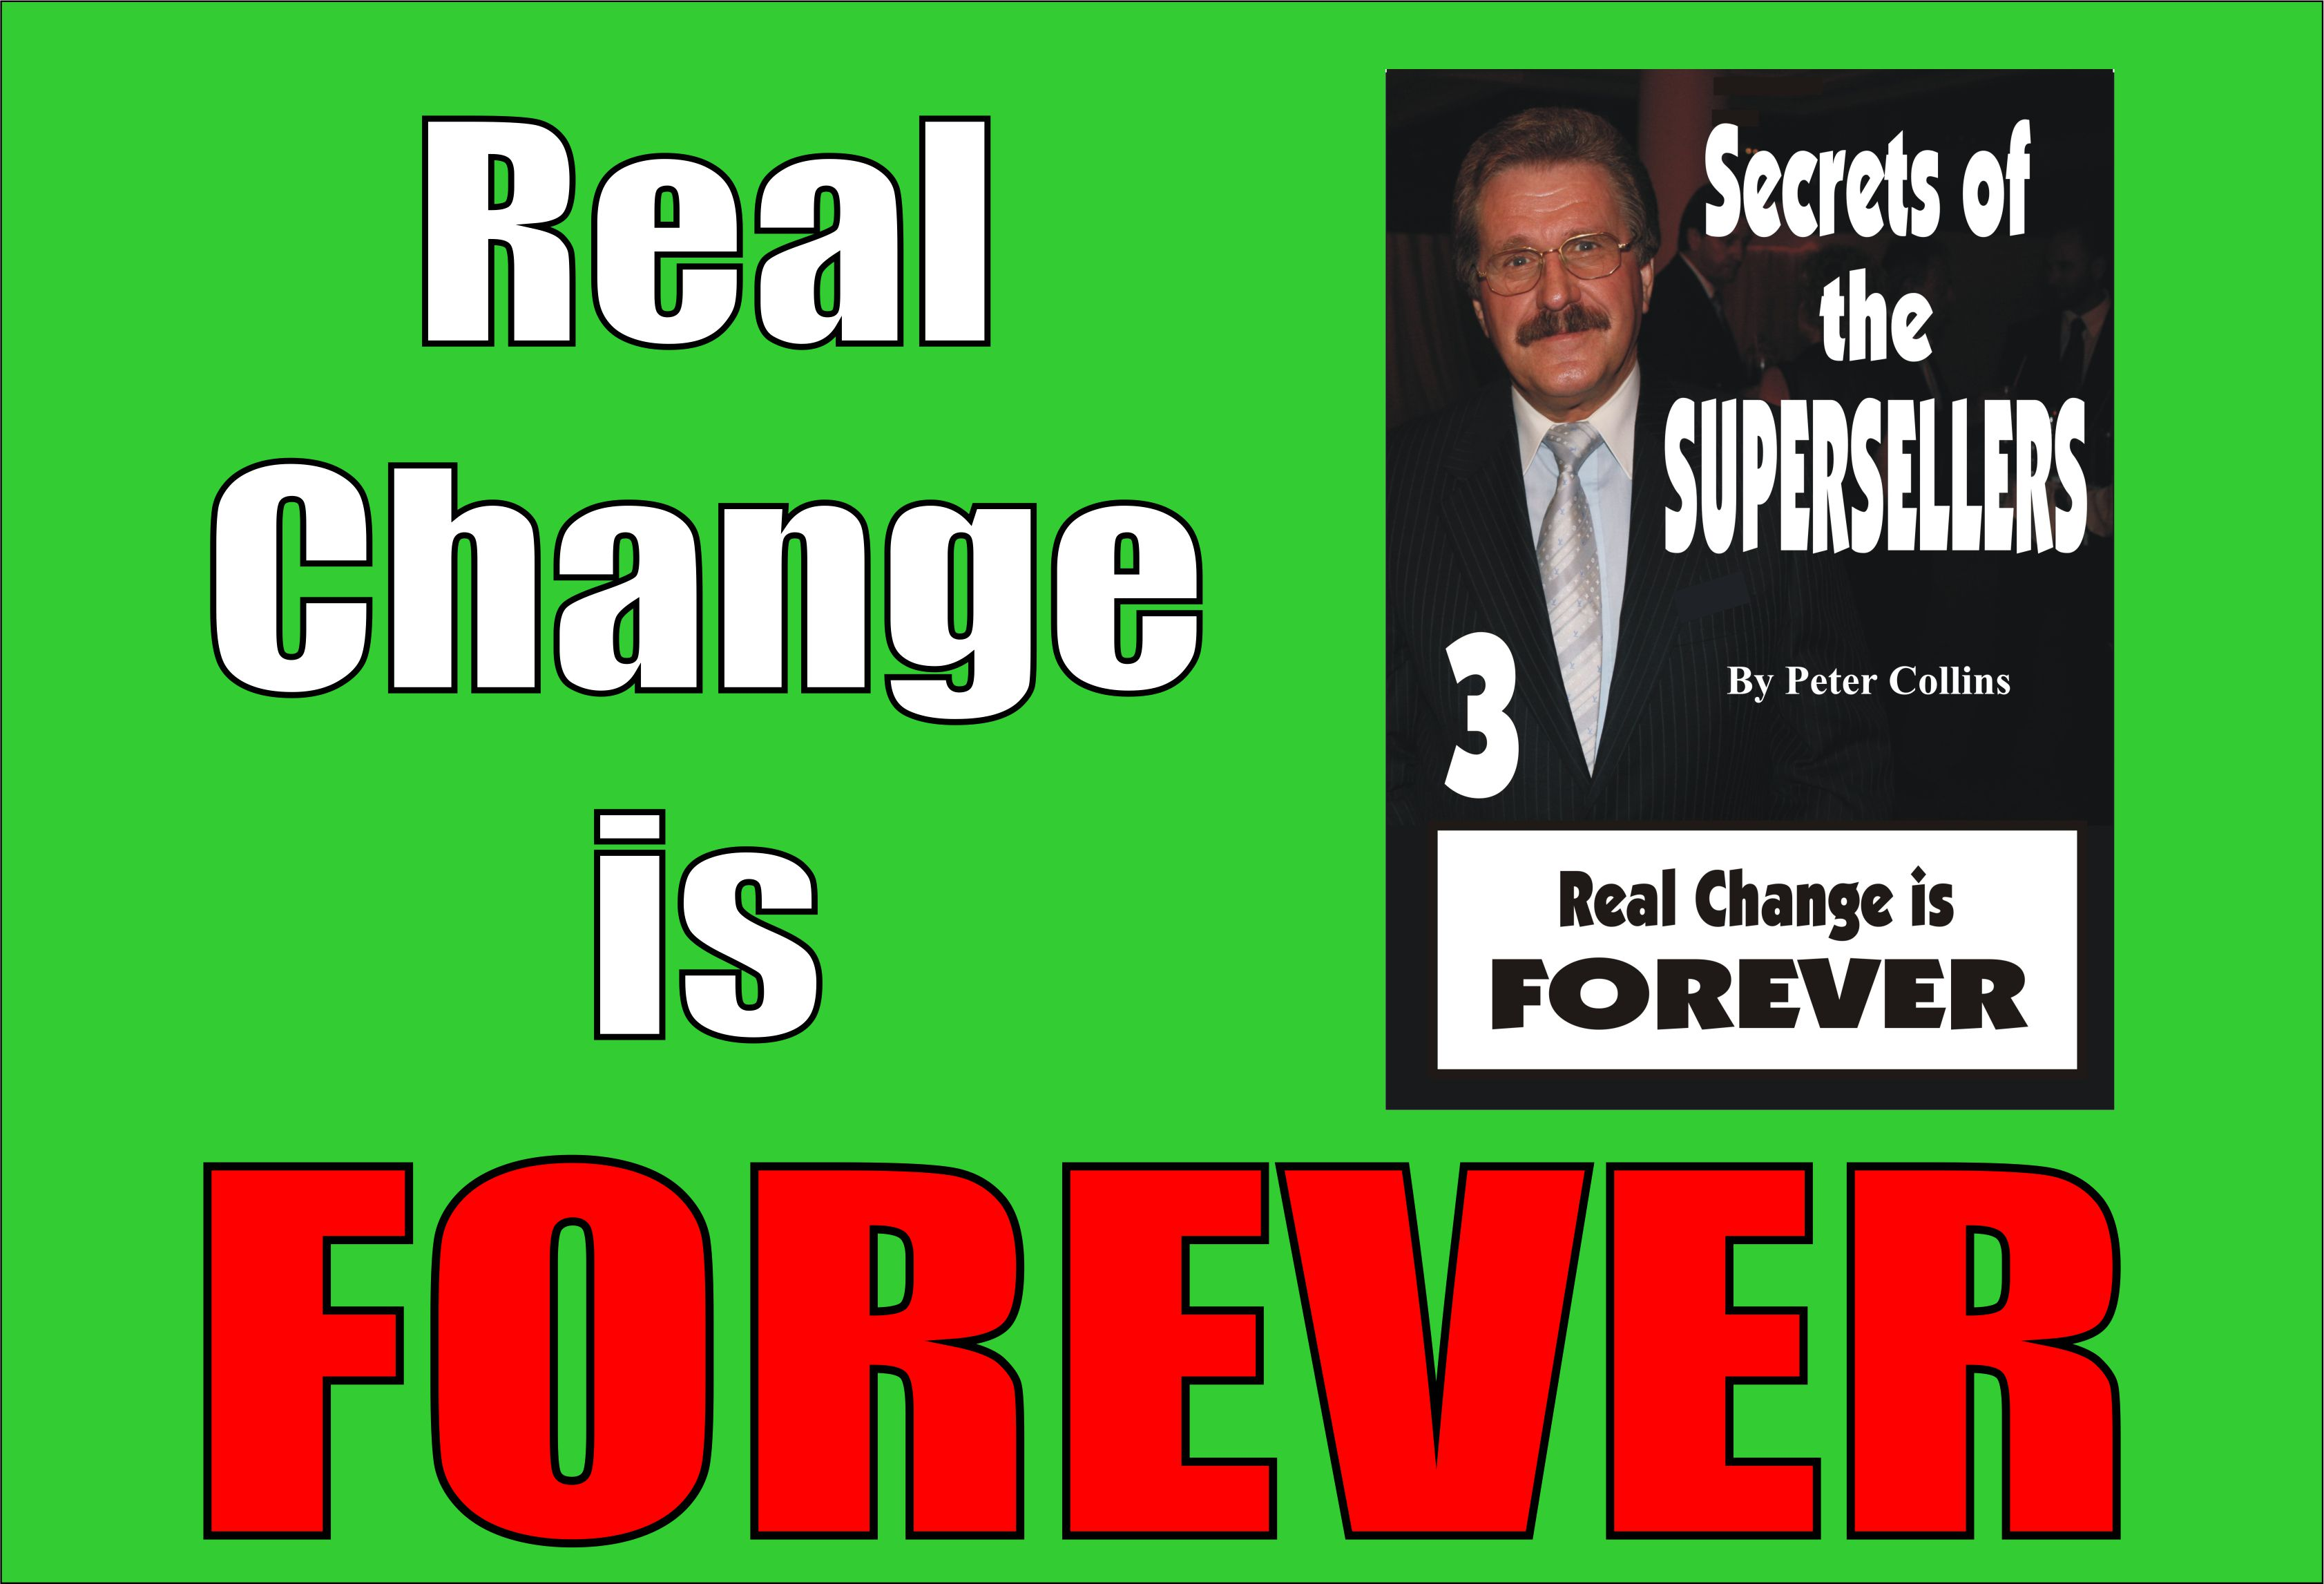 Real Change if FOREVER